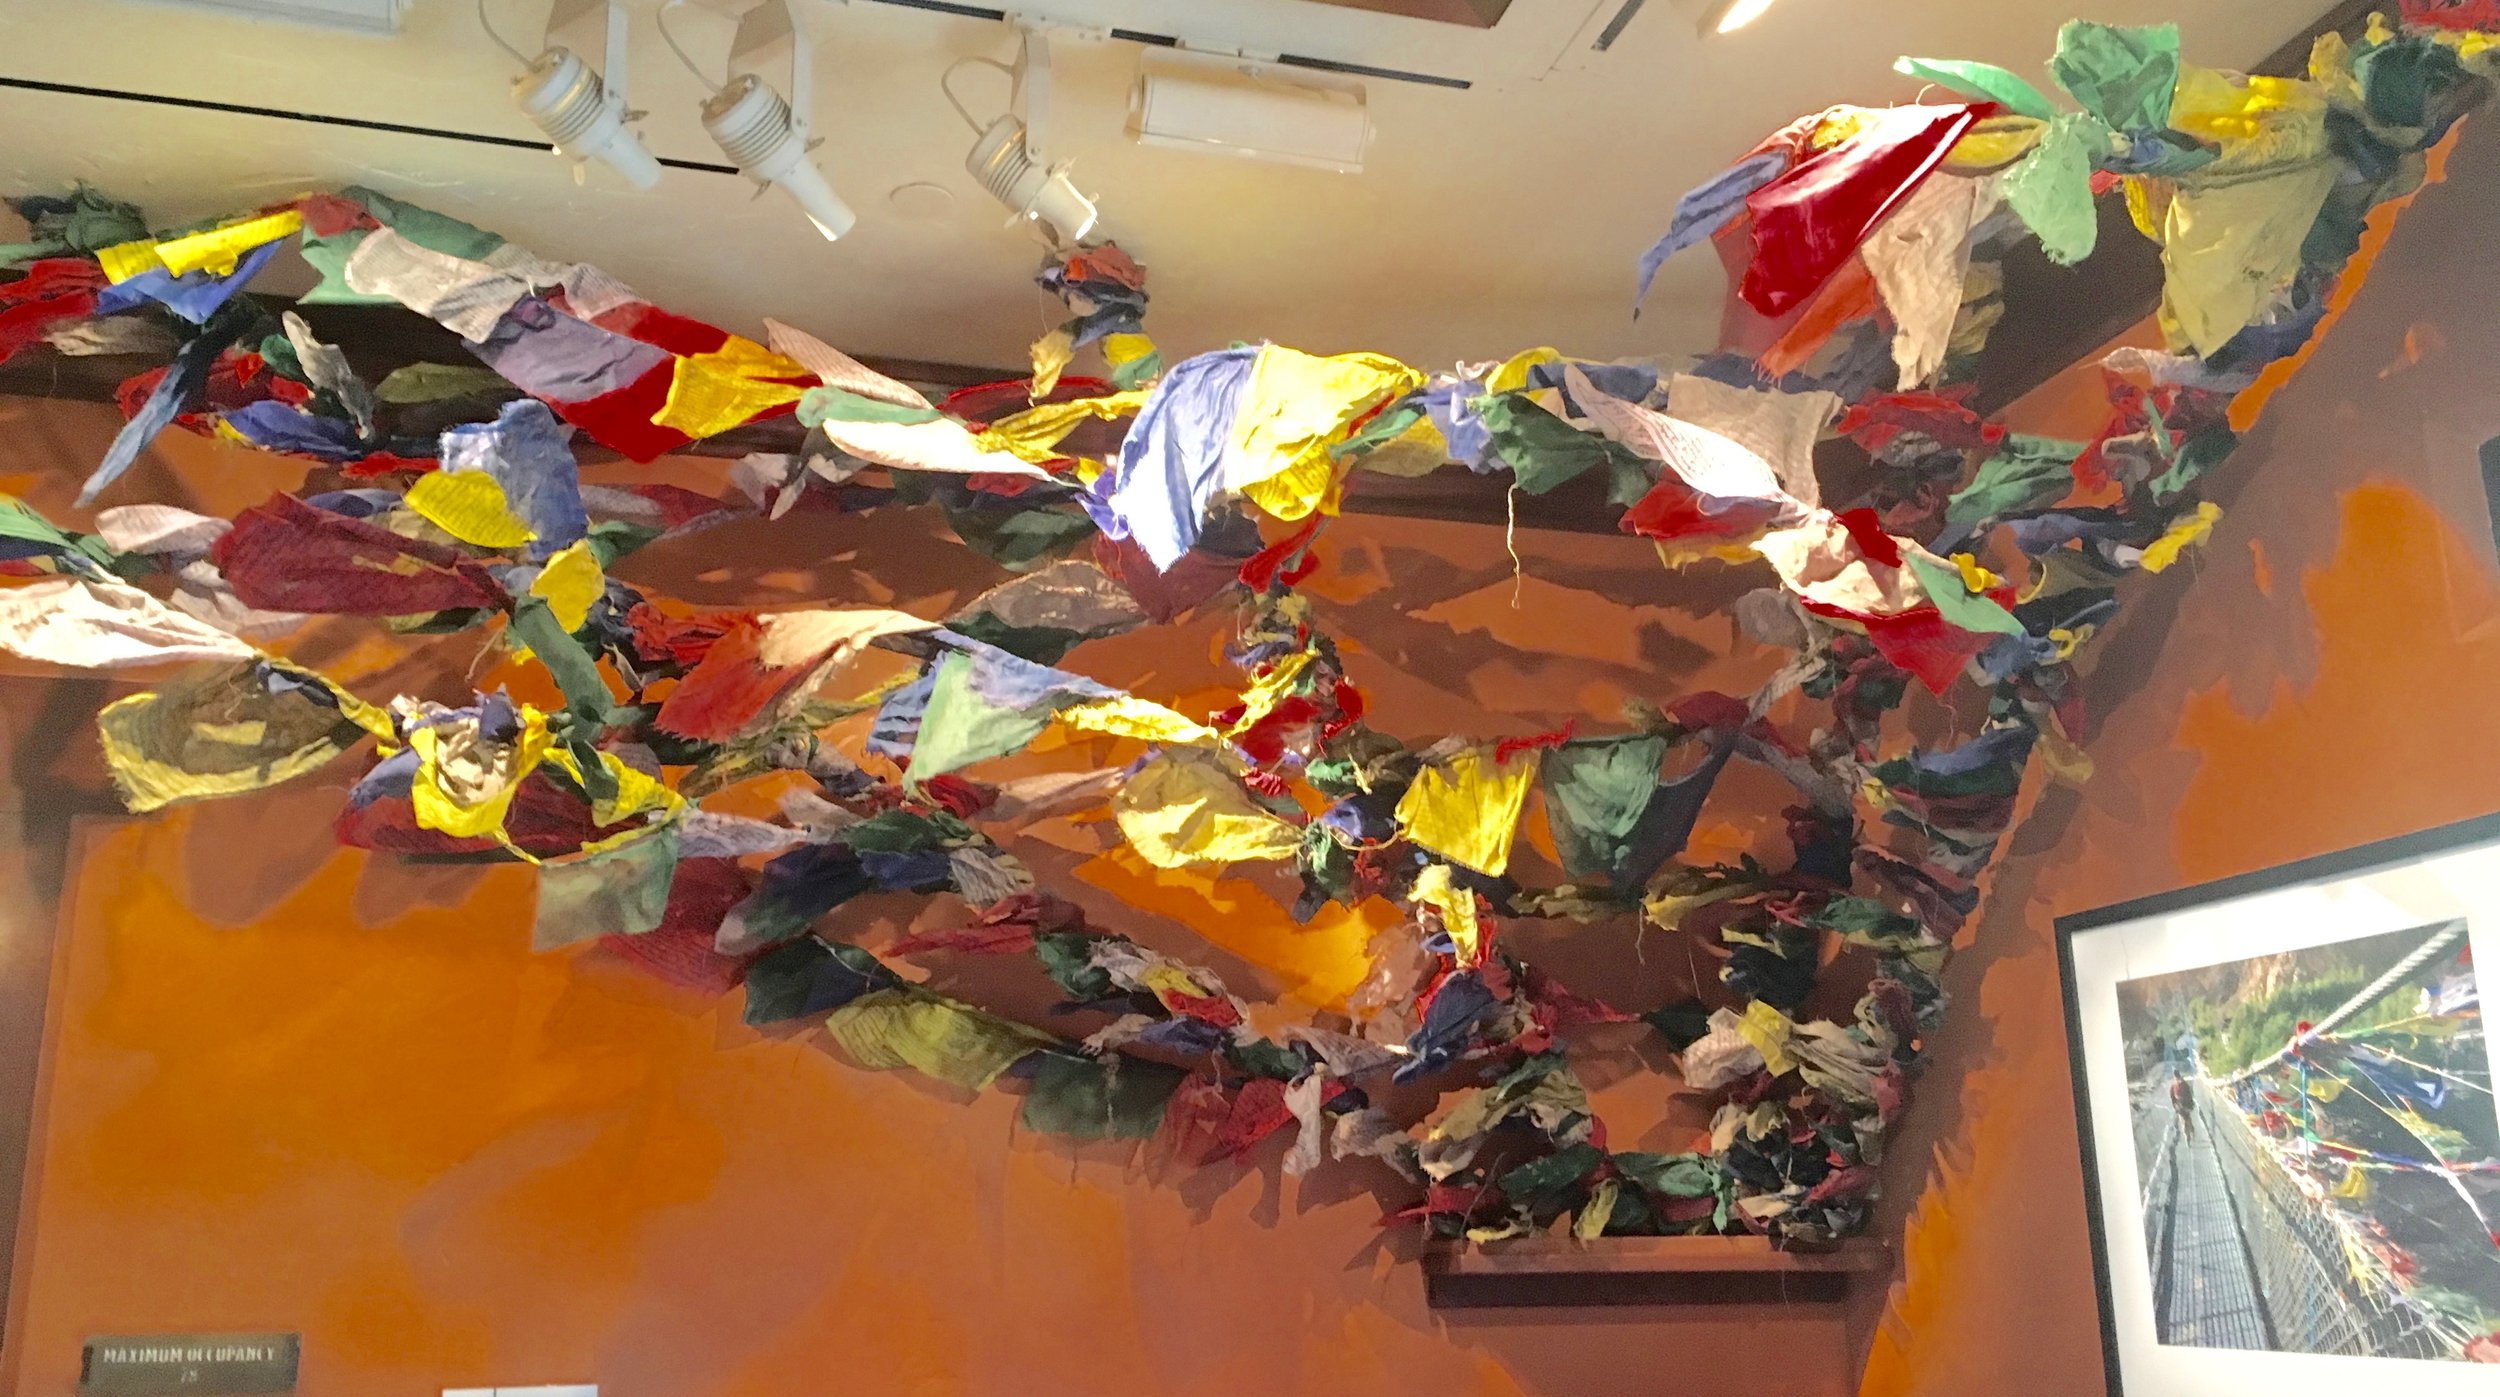 Prayer flags like those founds in the valleys of Nepal at Tiffins